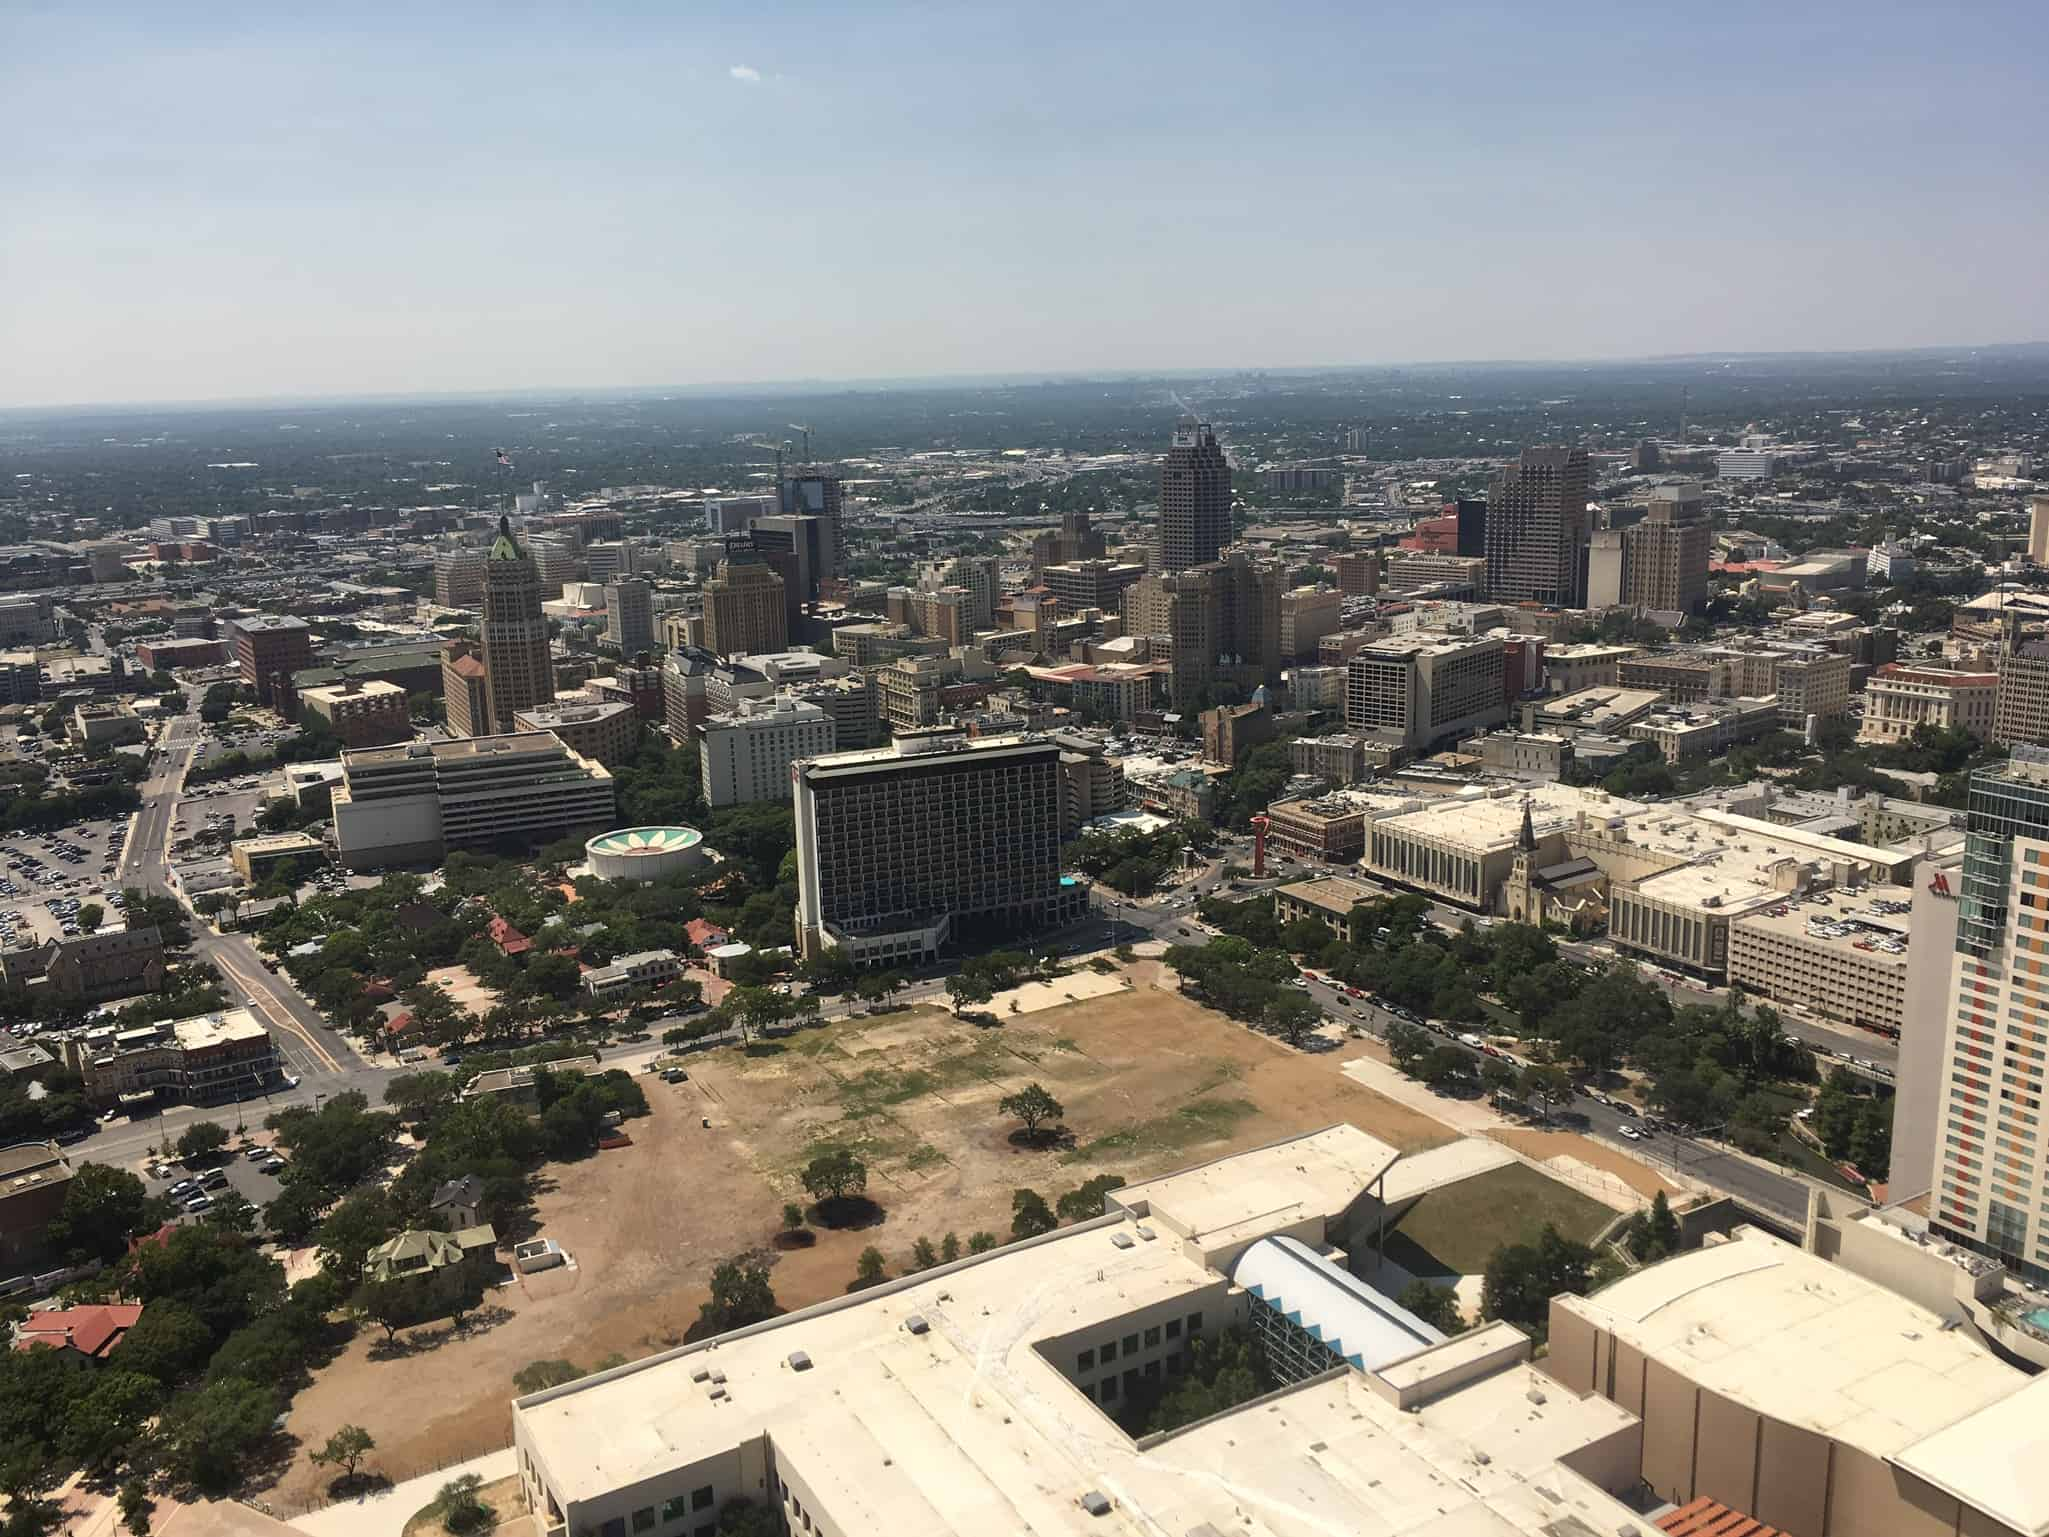 Visiting the Tower of the Americas in San Antonio TX, tips featured by top travel blog, The Common Traveler: Tower of the Americas view of San Antonio from the tower of the americas